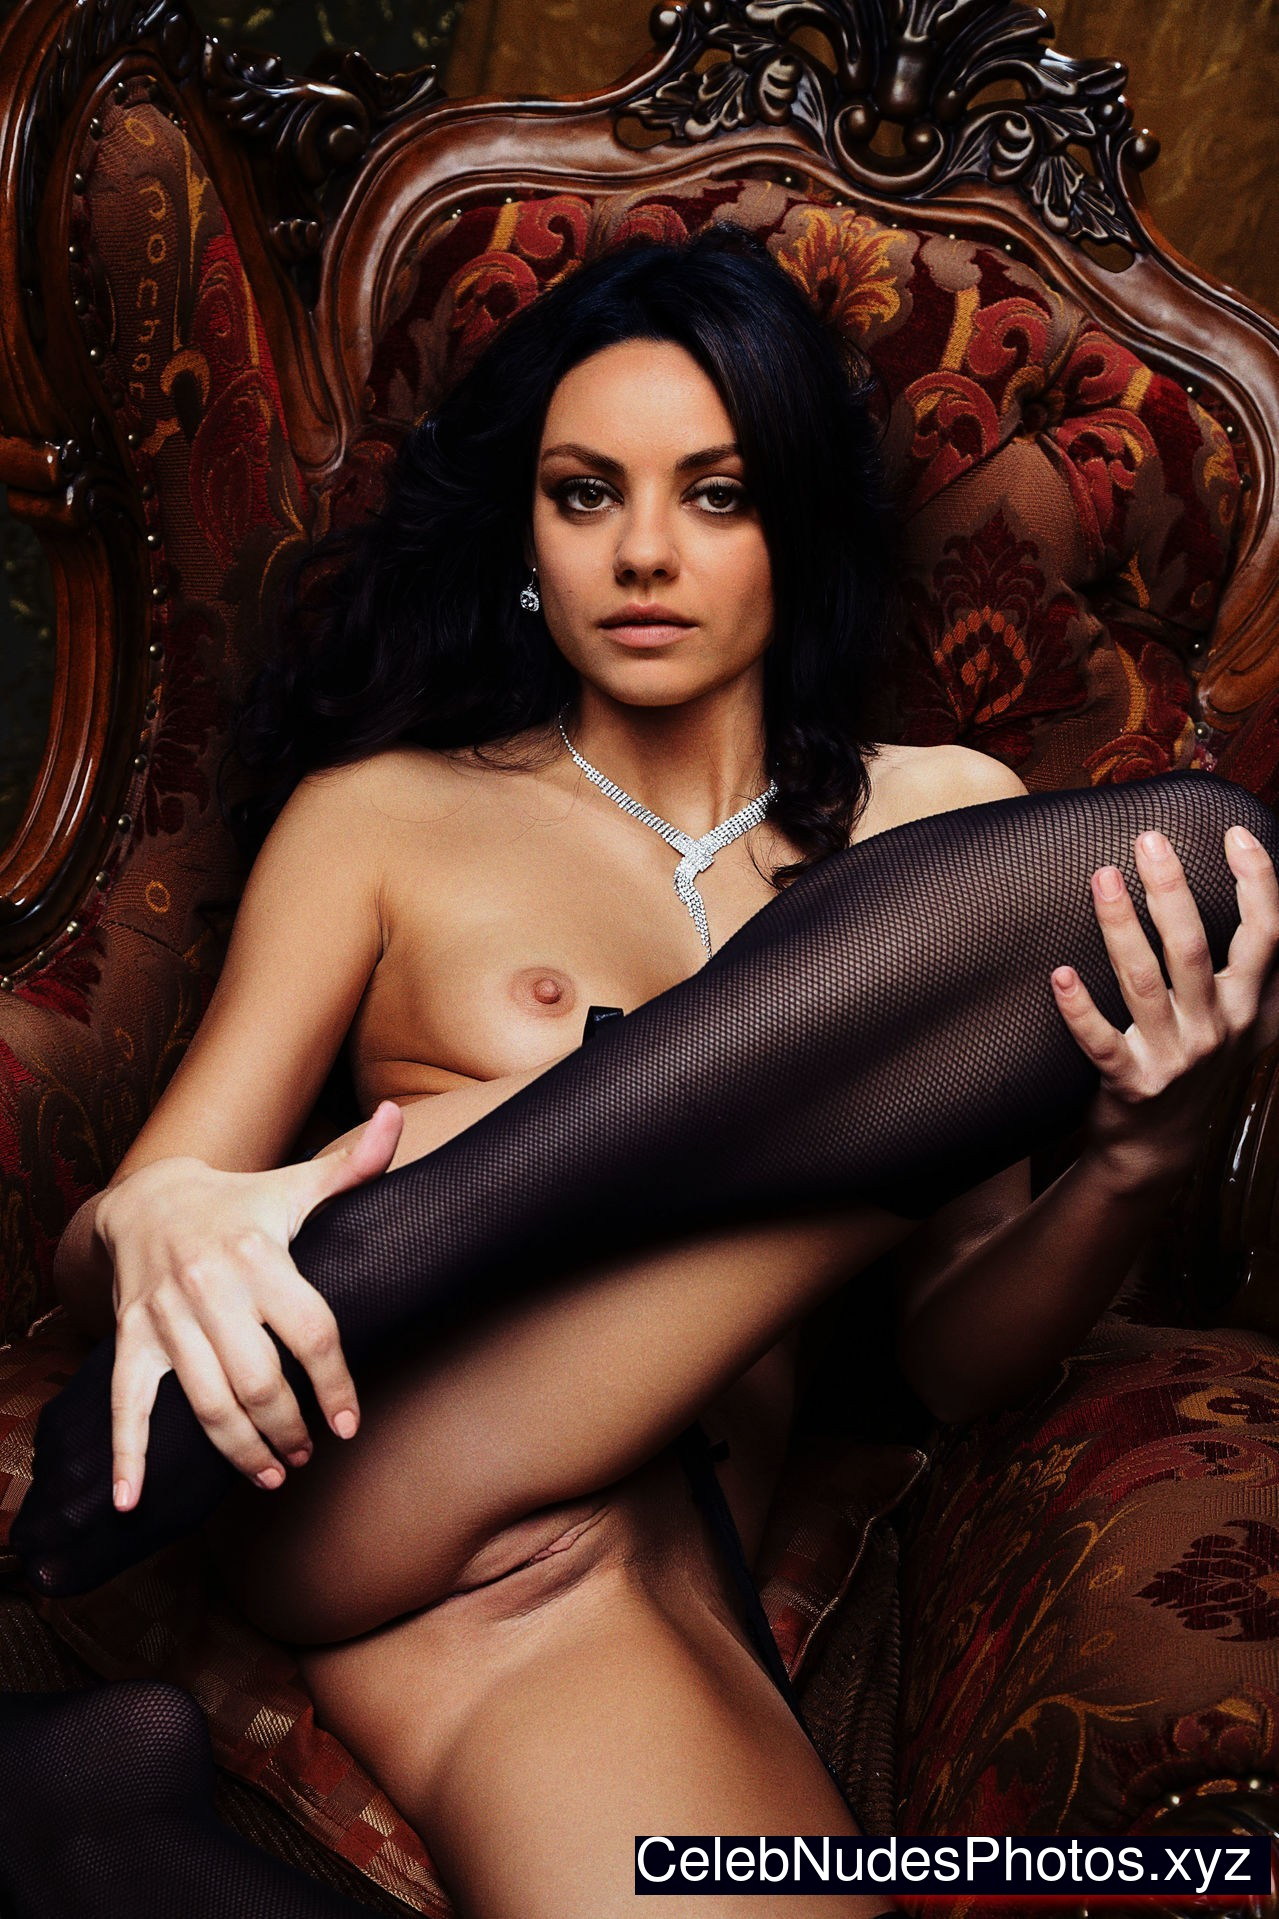 Mila kunis sex pictures was